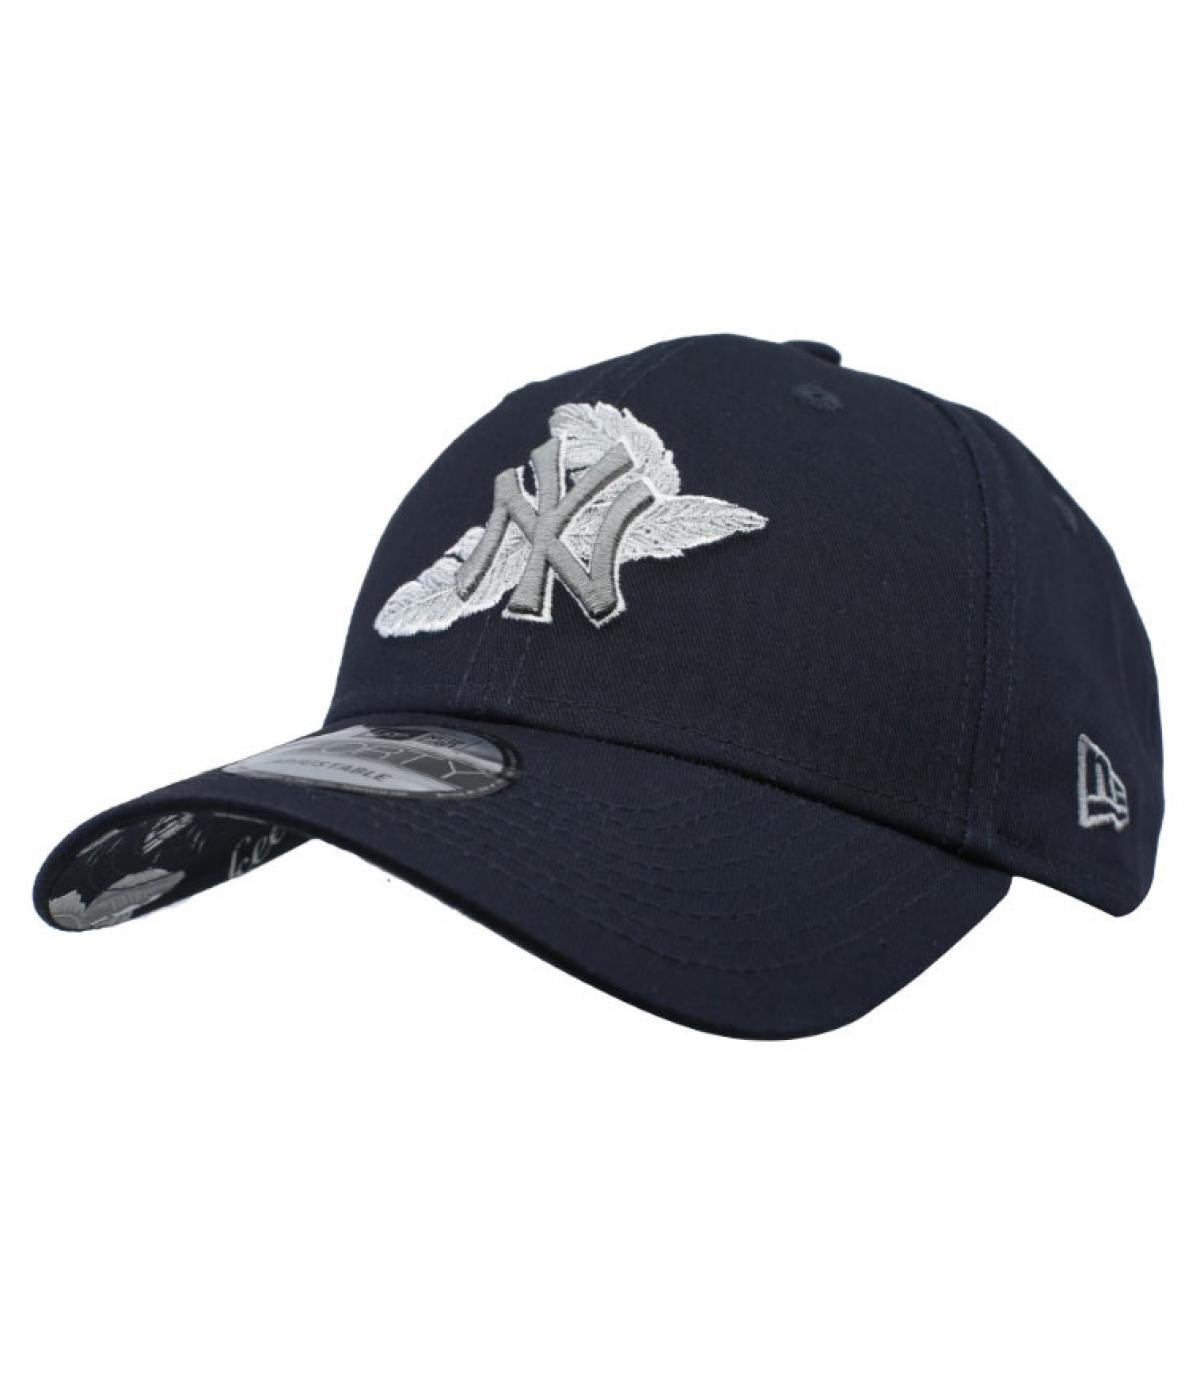 Détails Casquette MLB Light Weight NY 9Forty navy gray - image 2